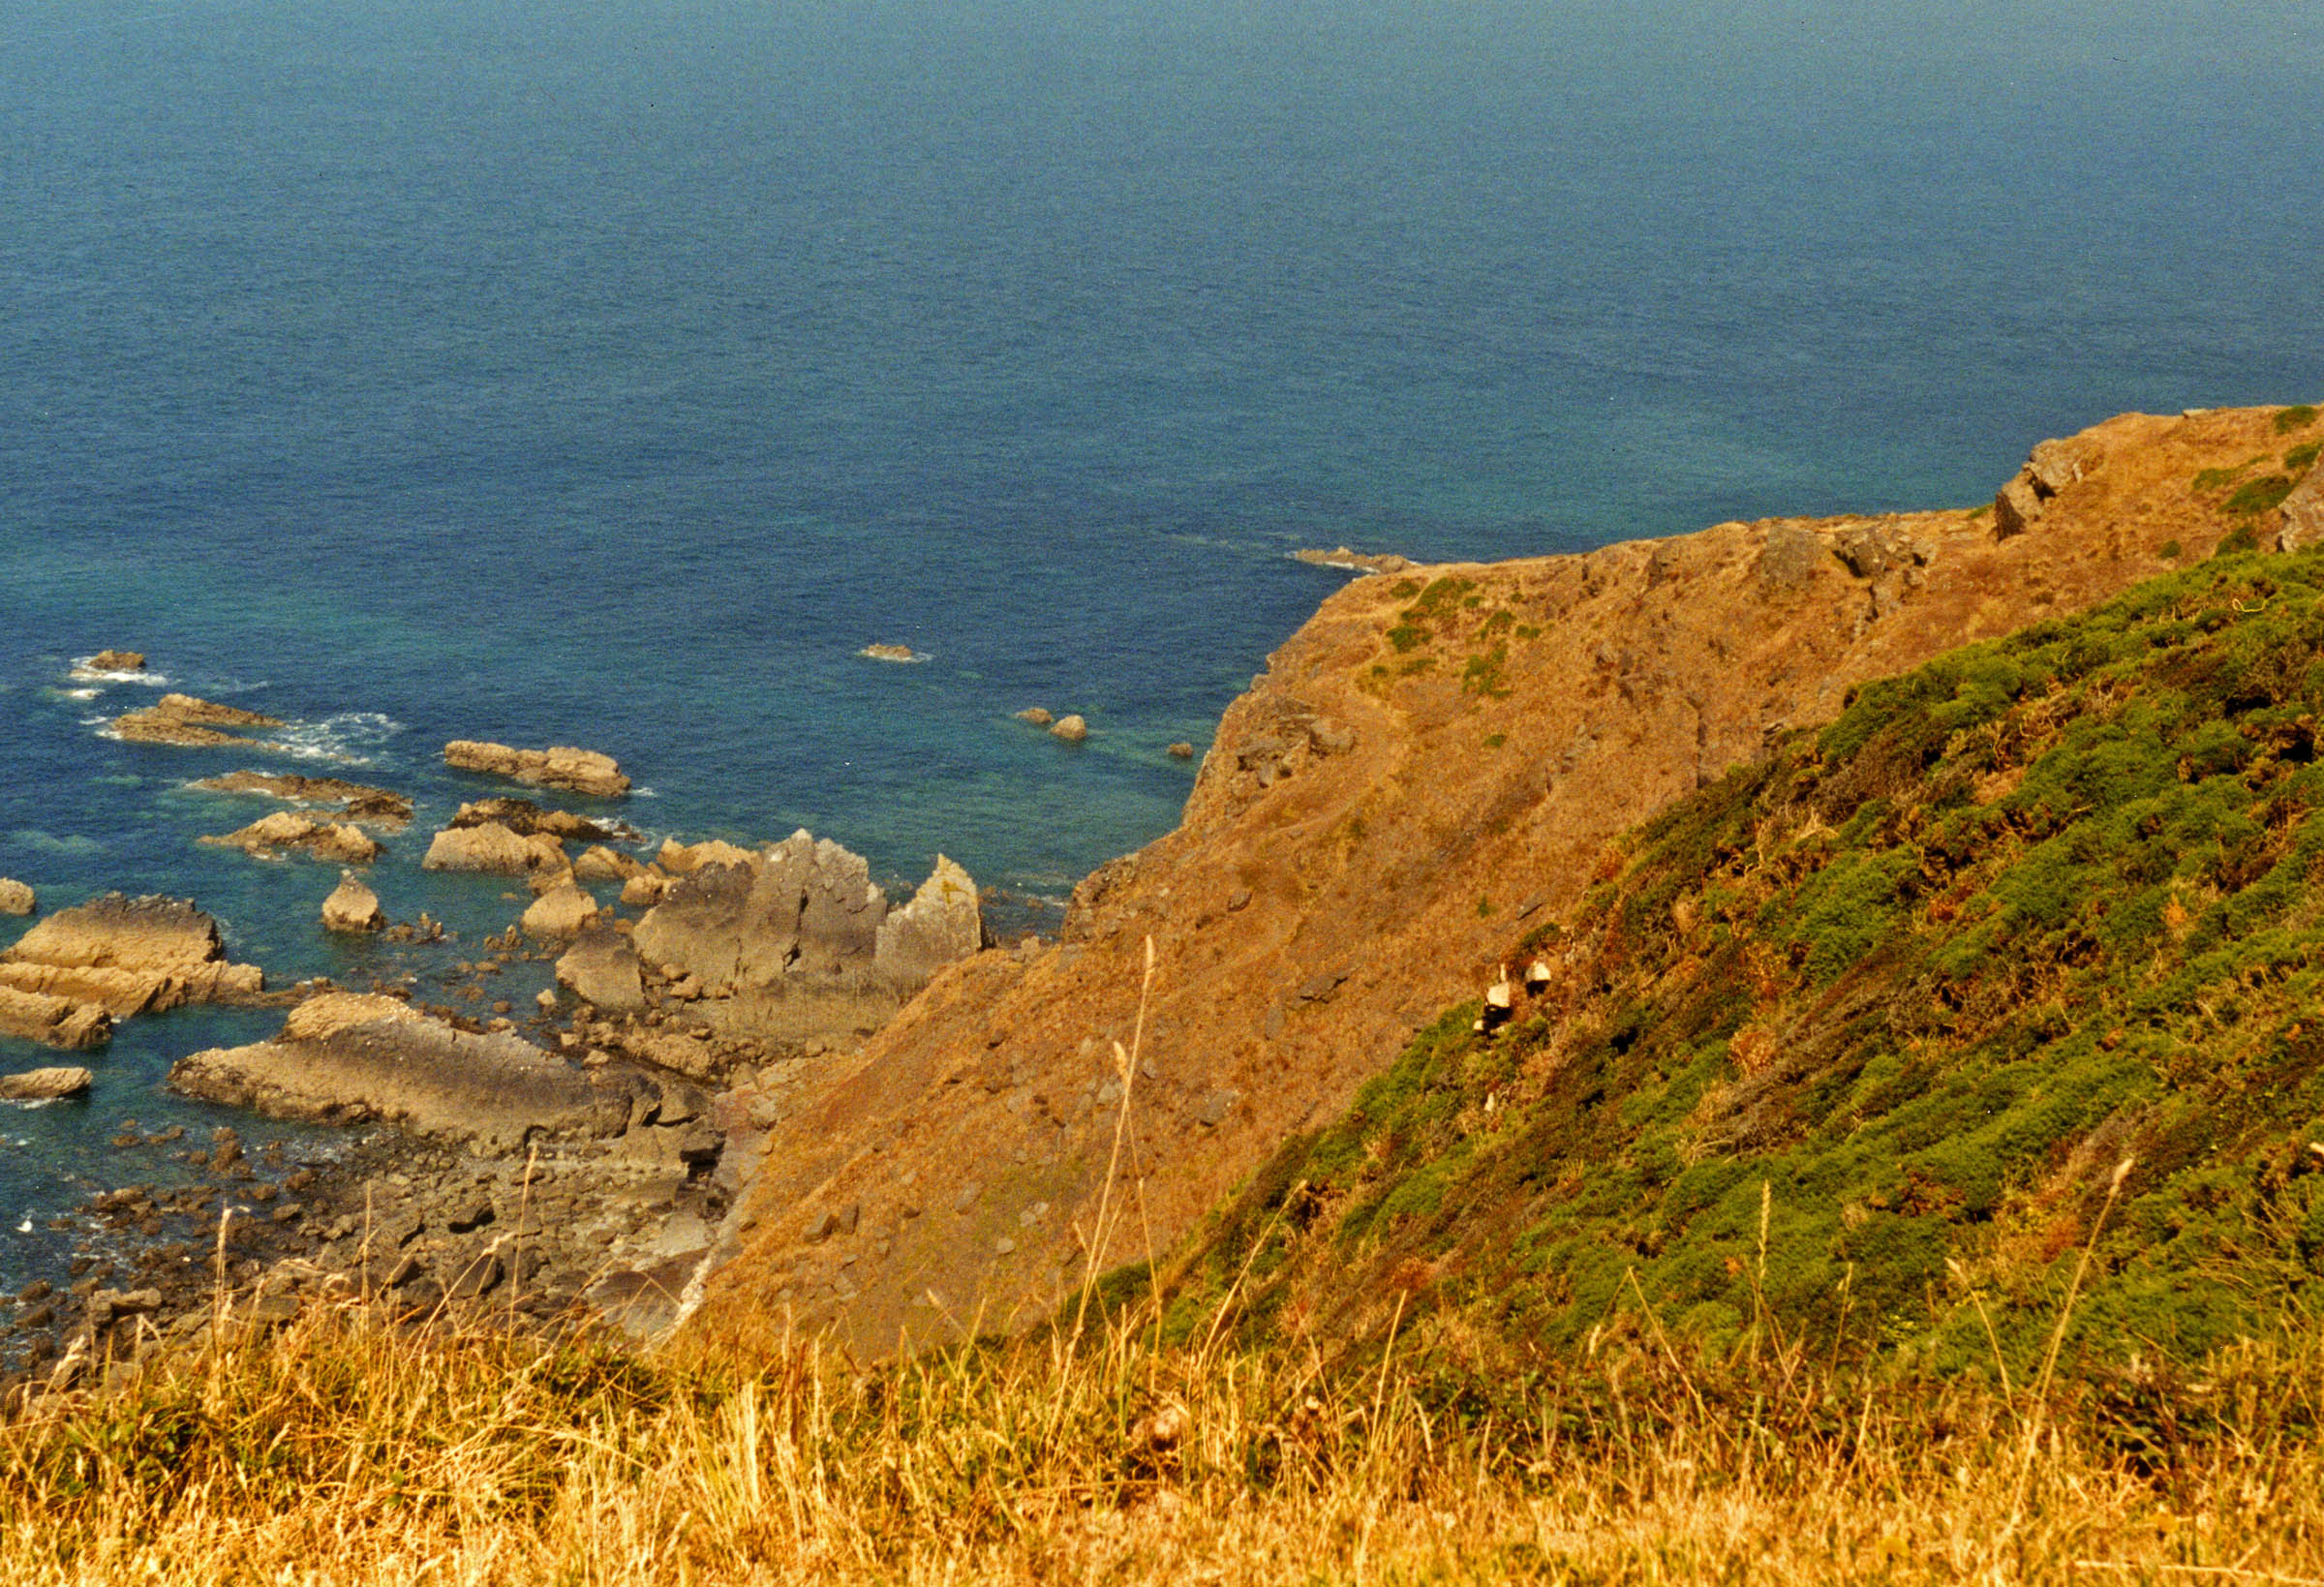 Cliff over ocean in Morenstow, Cornwall, UK, 1997.